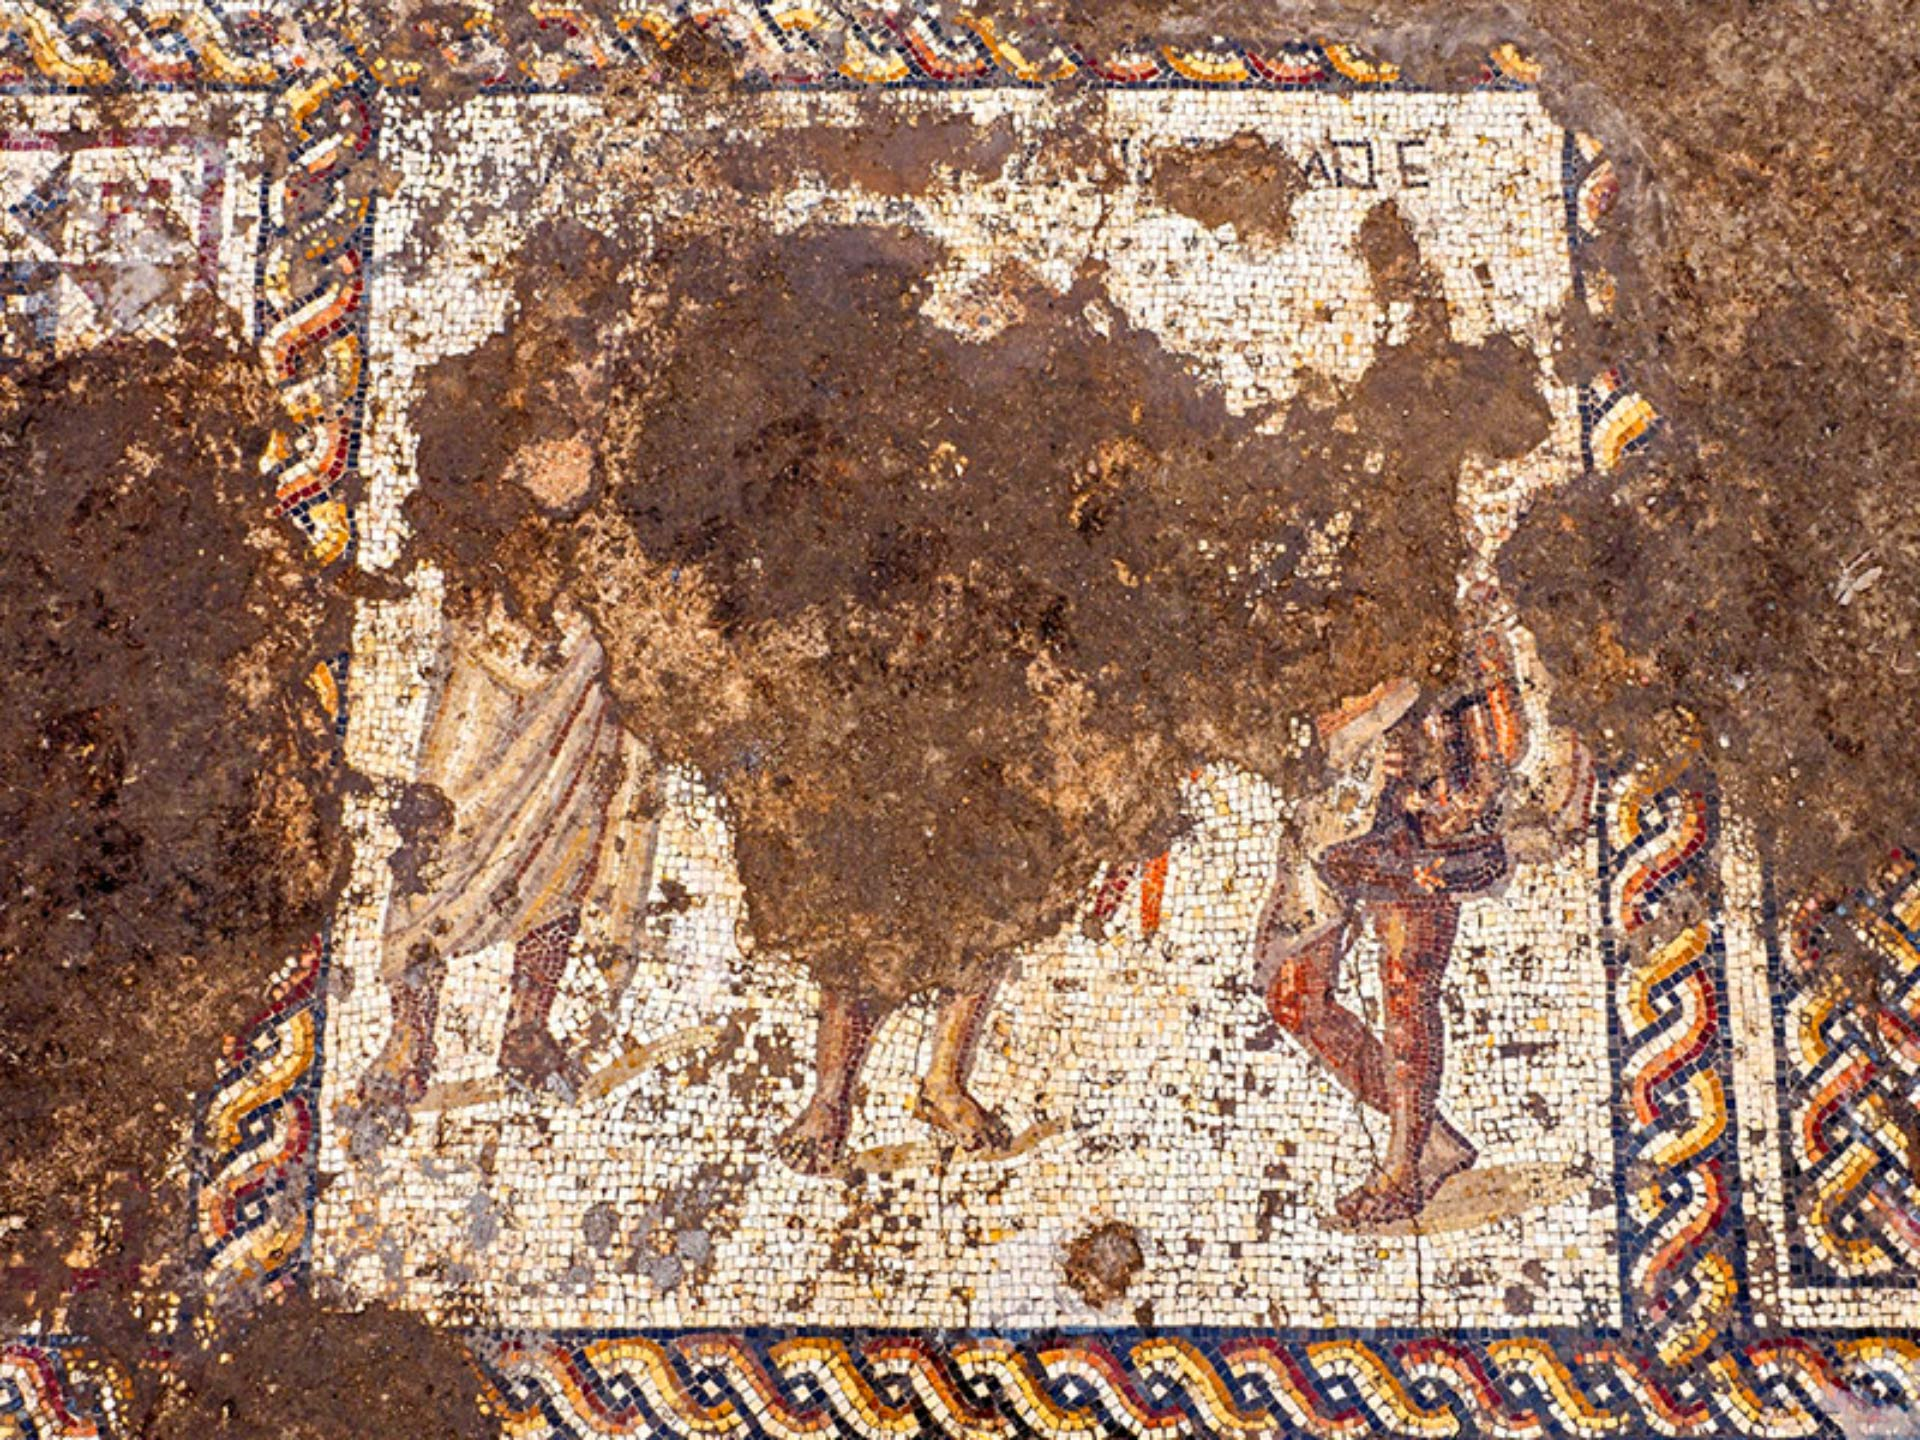 The 1,800-year-old Roman mosaic uncovered in Caesarea, Israel. Image credit